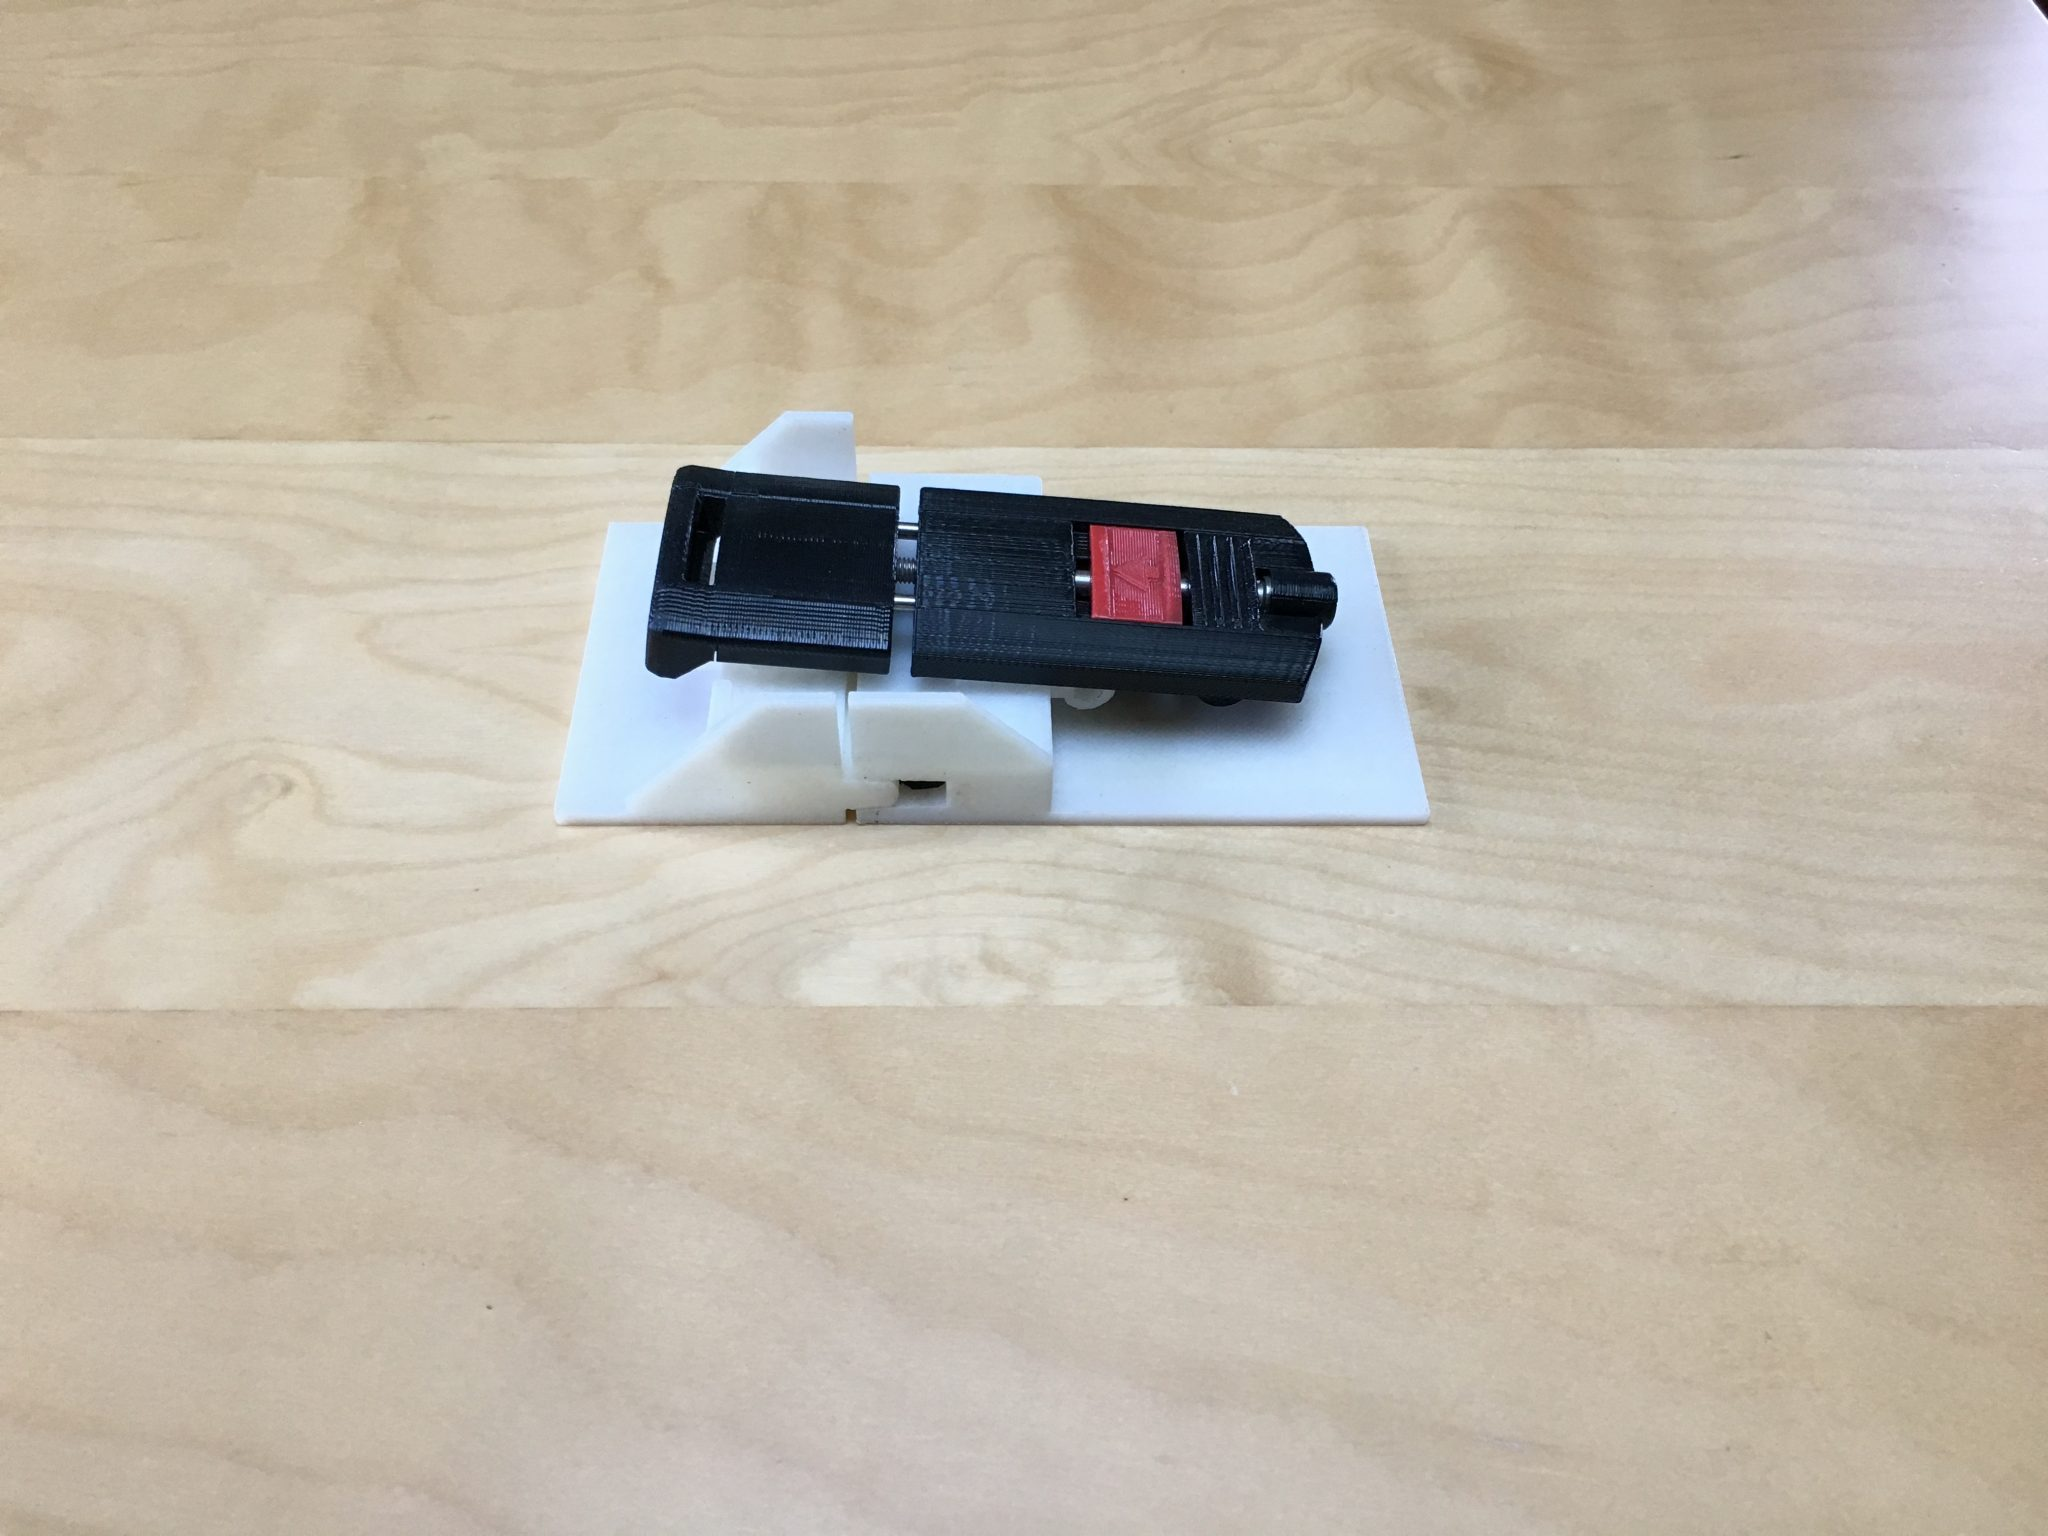 3D printed prototype clamp